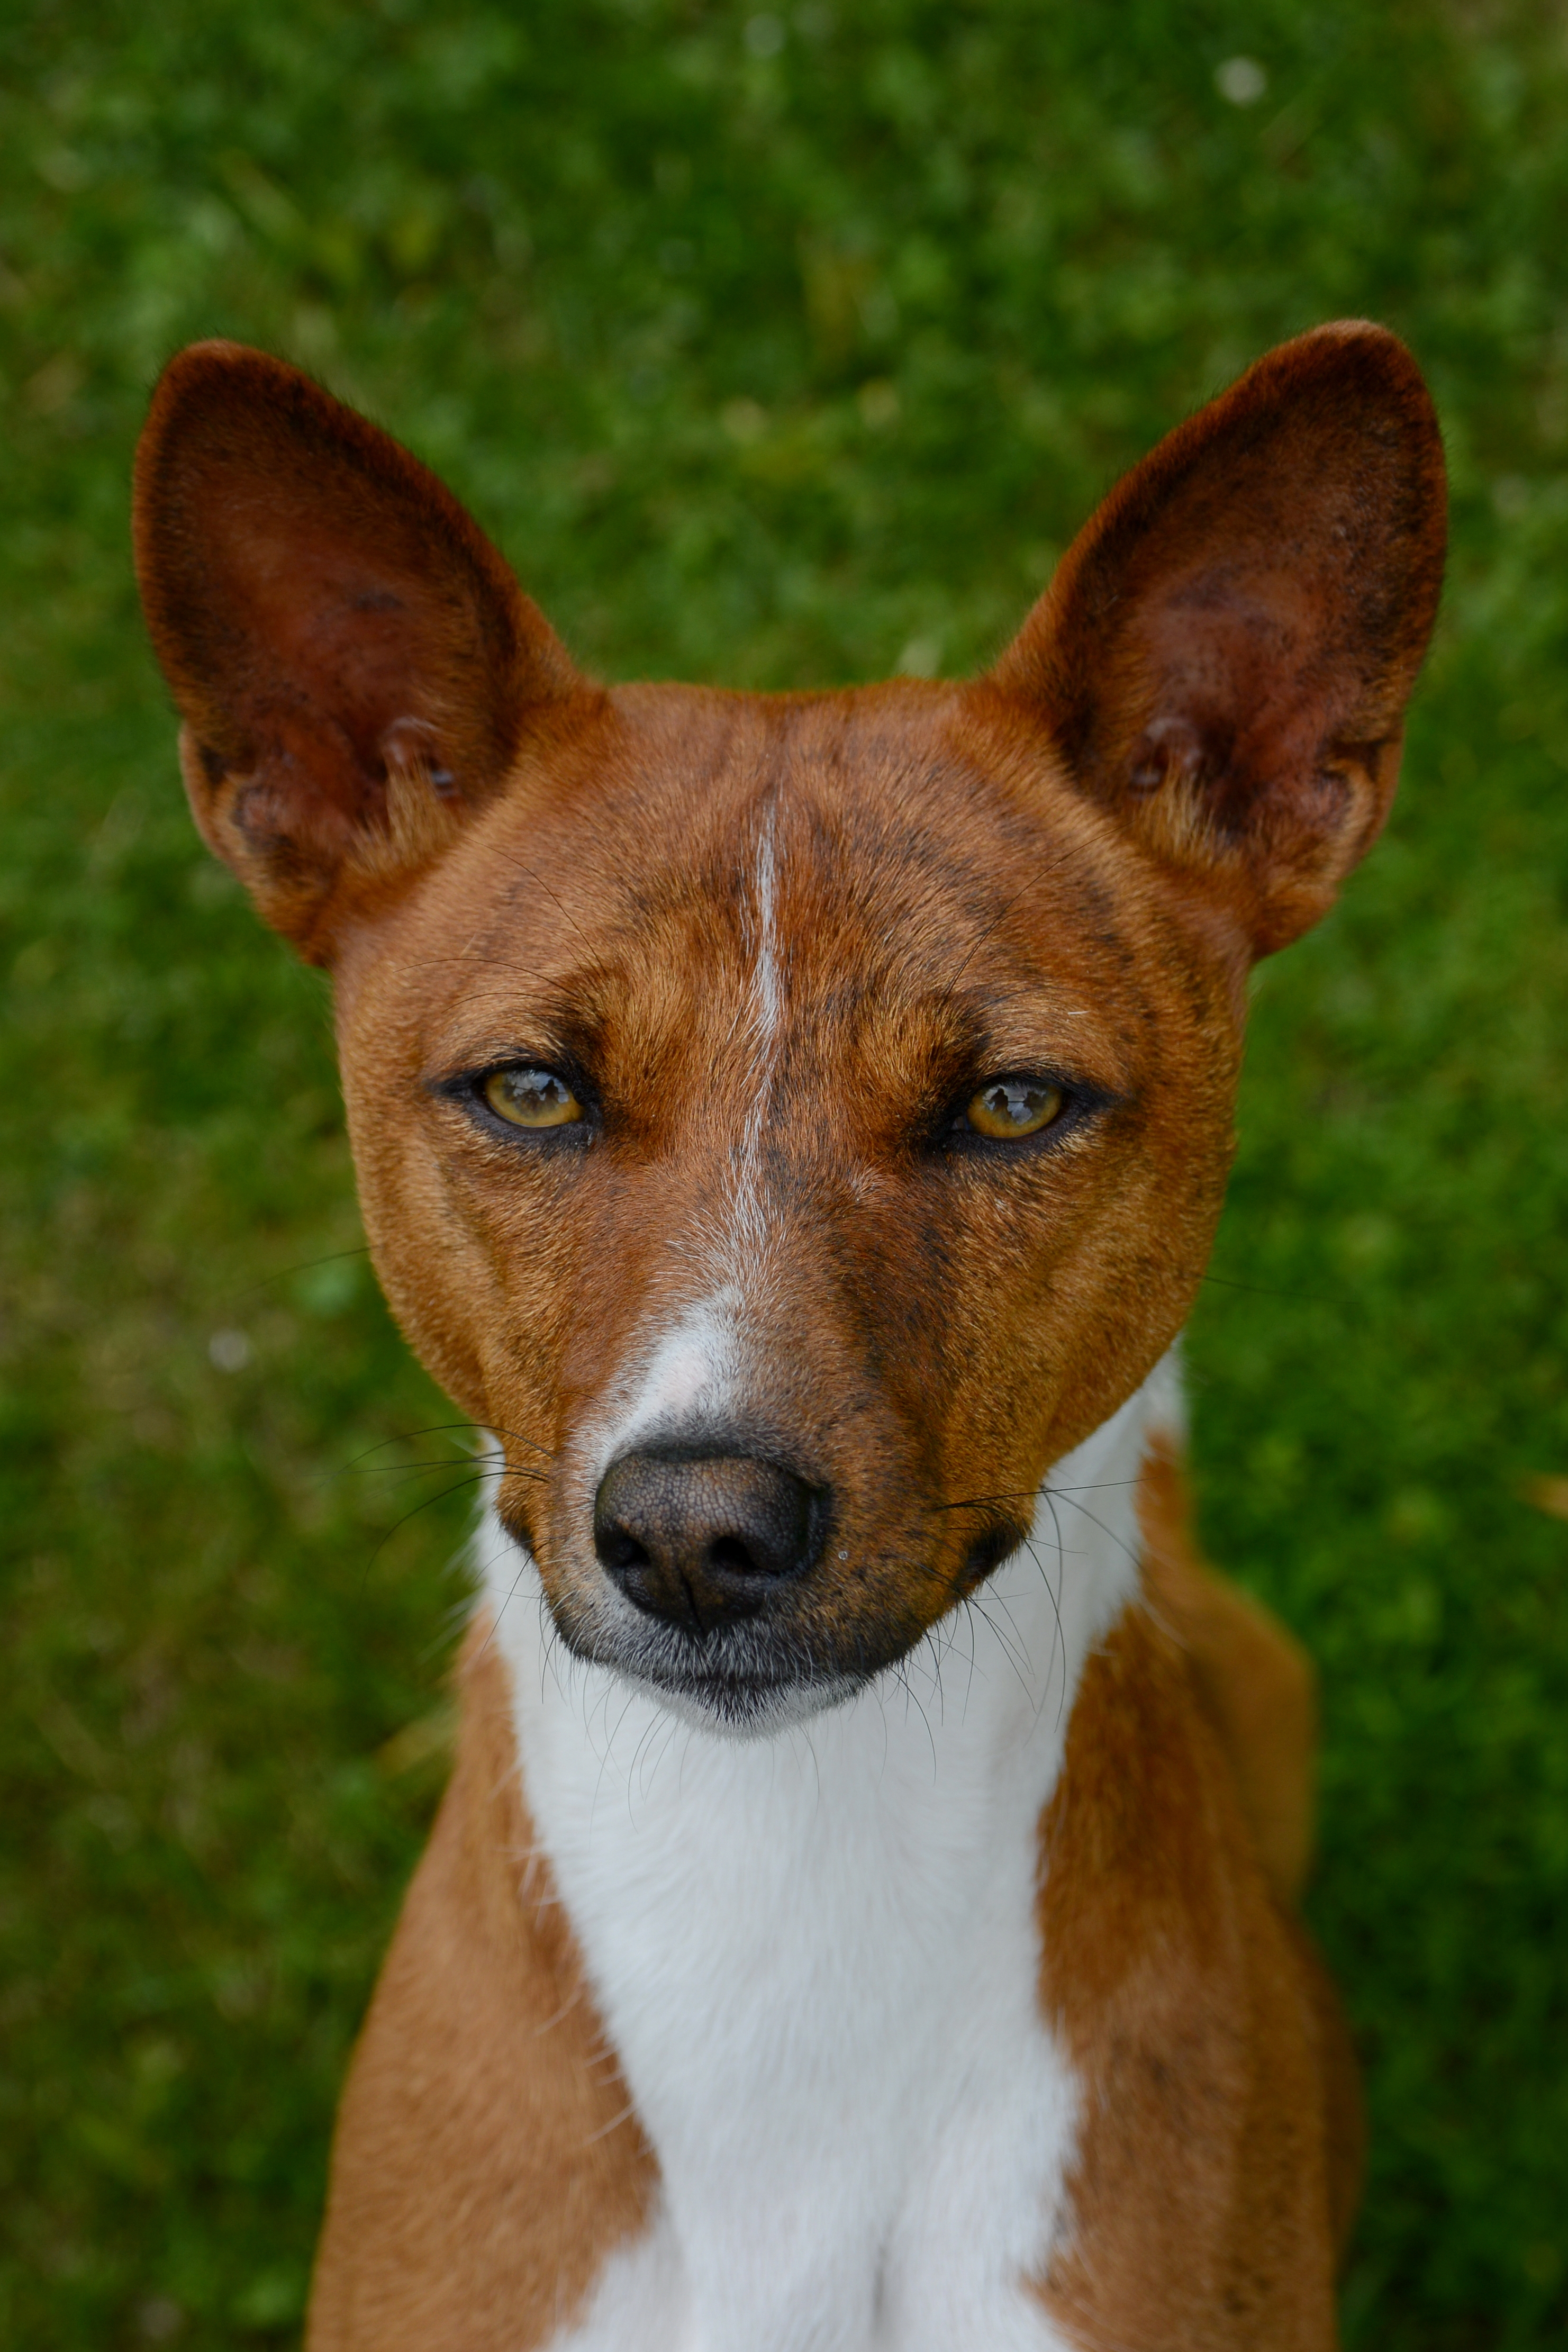 Dogs Ears Are Red And Irritated